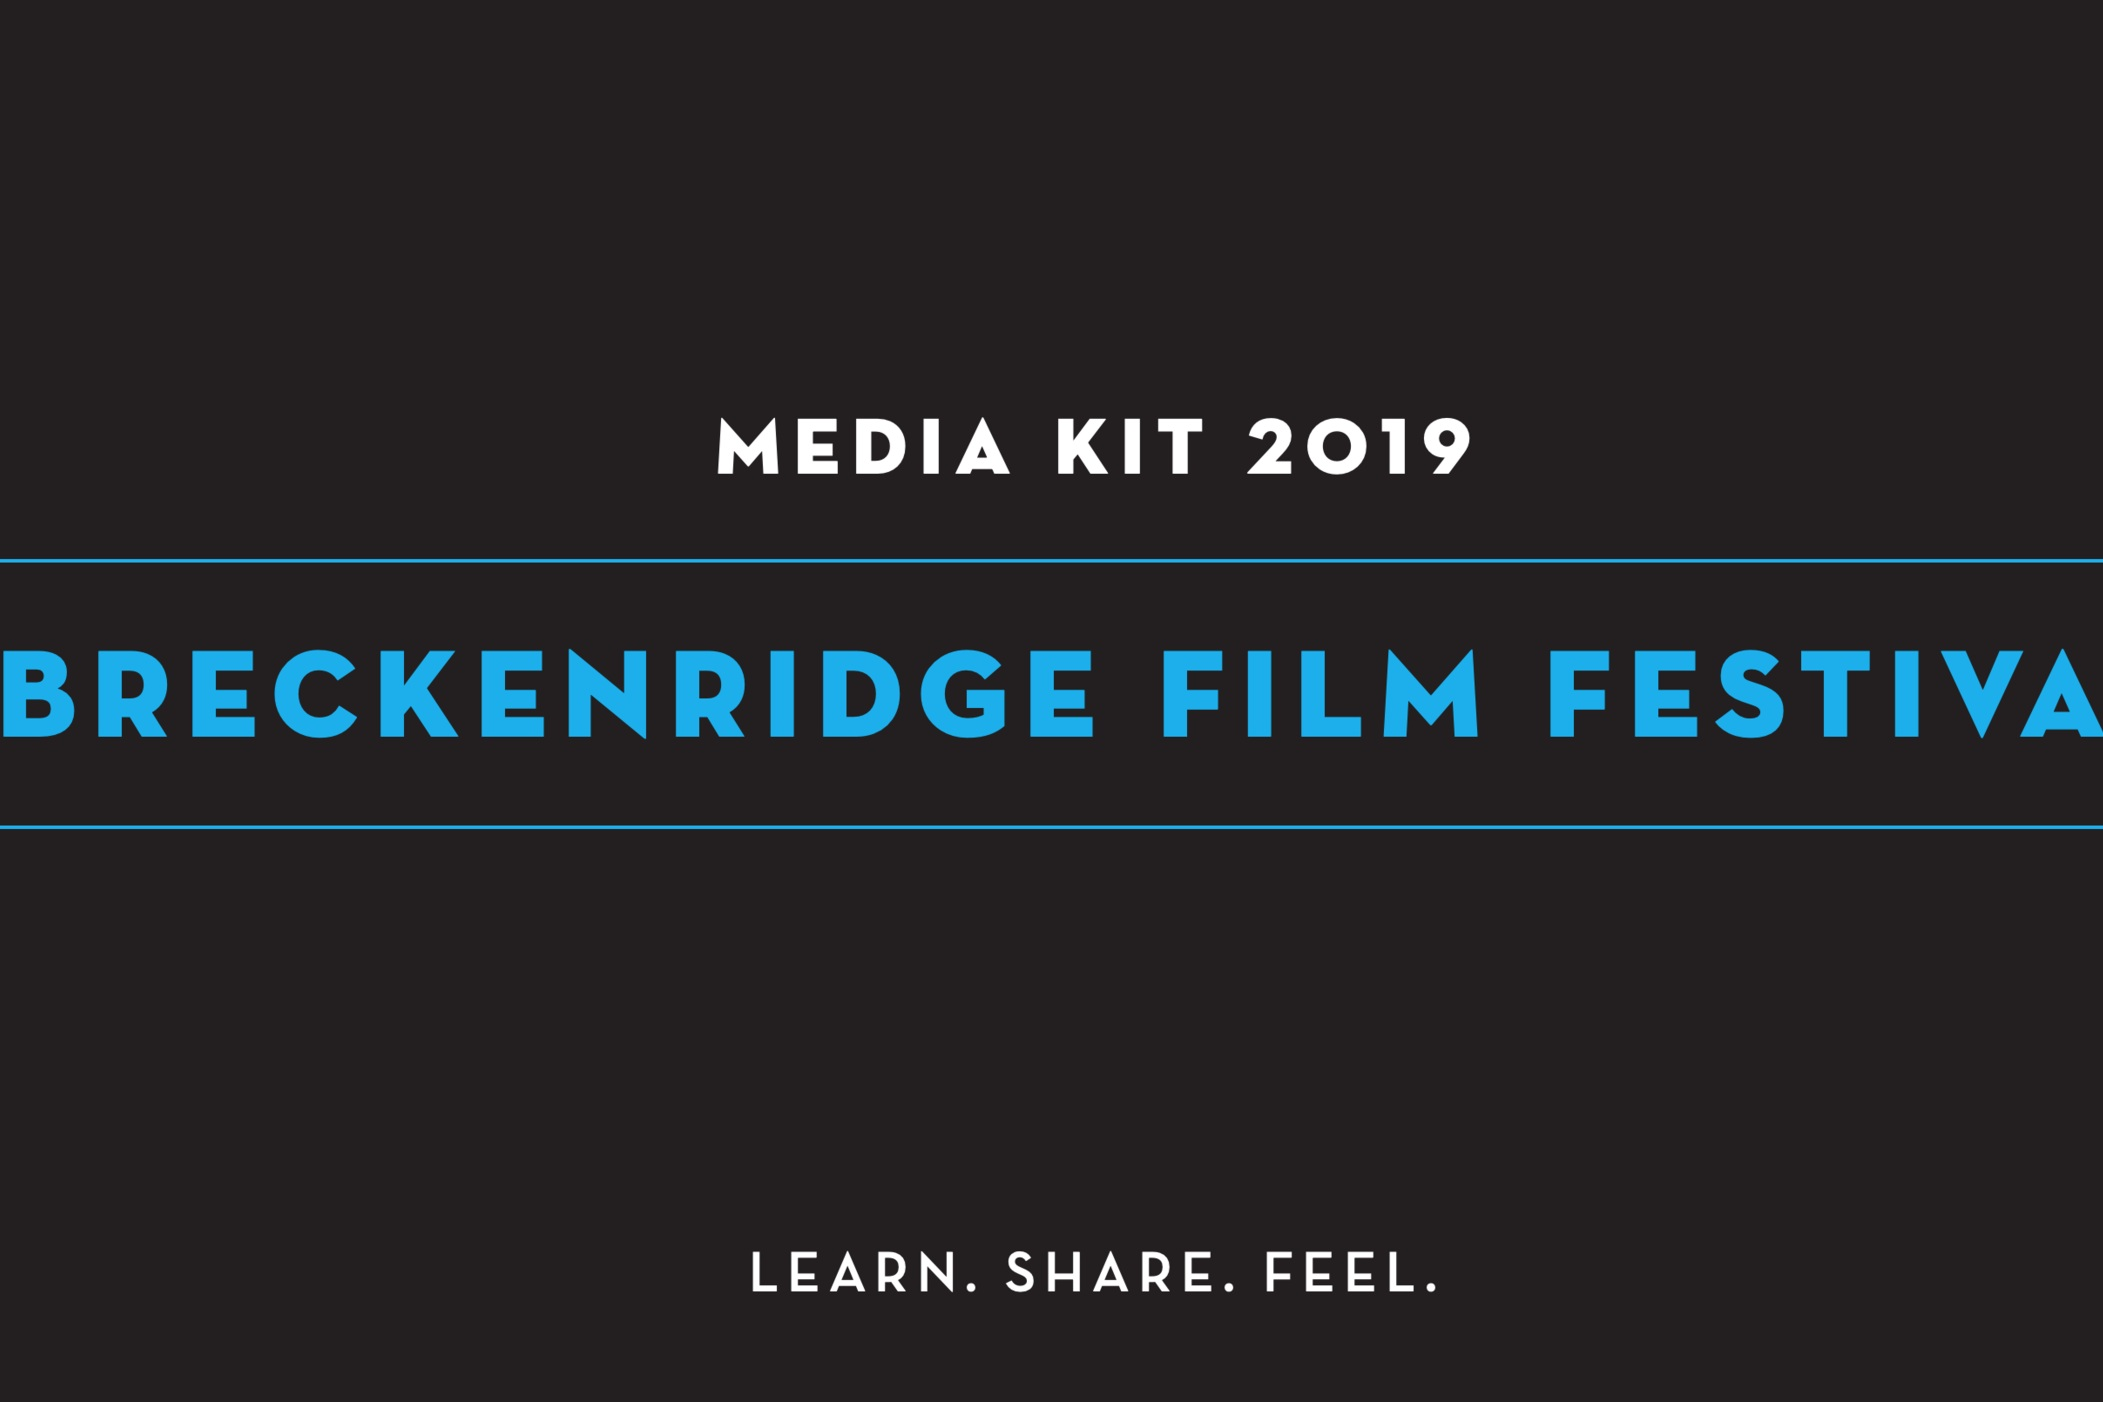 BFF ElectronicPress Kit - 2019 - We appreciate films and their creative minds behind them Learn more about our Organization!